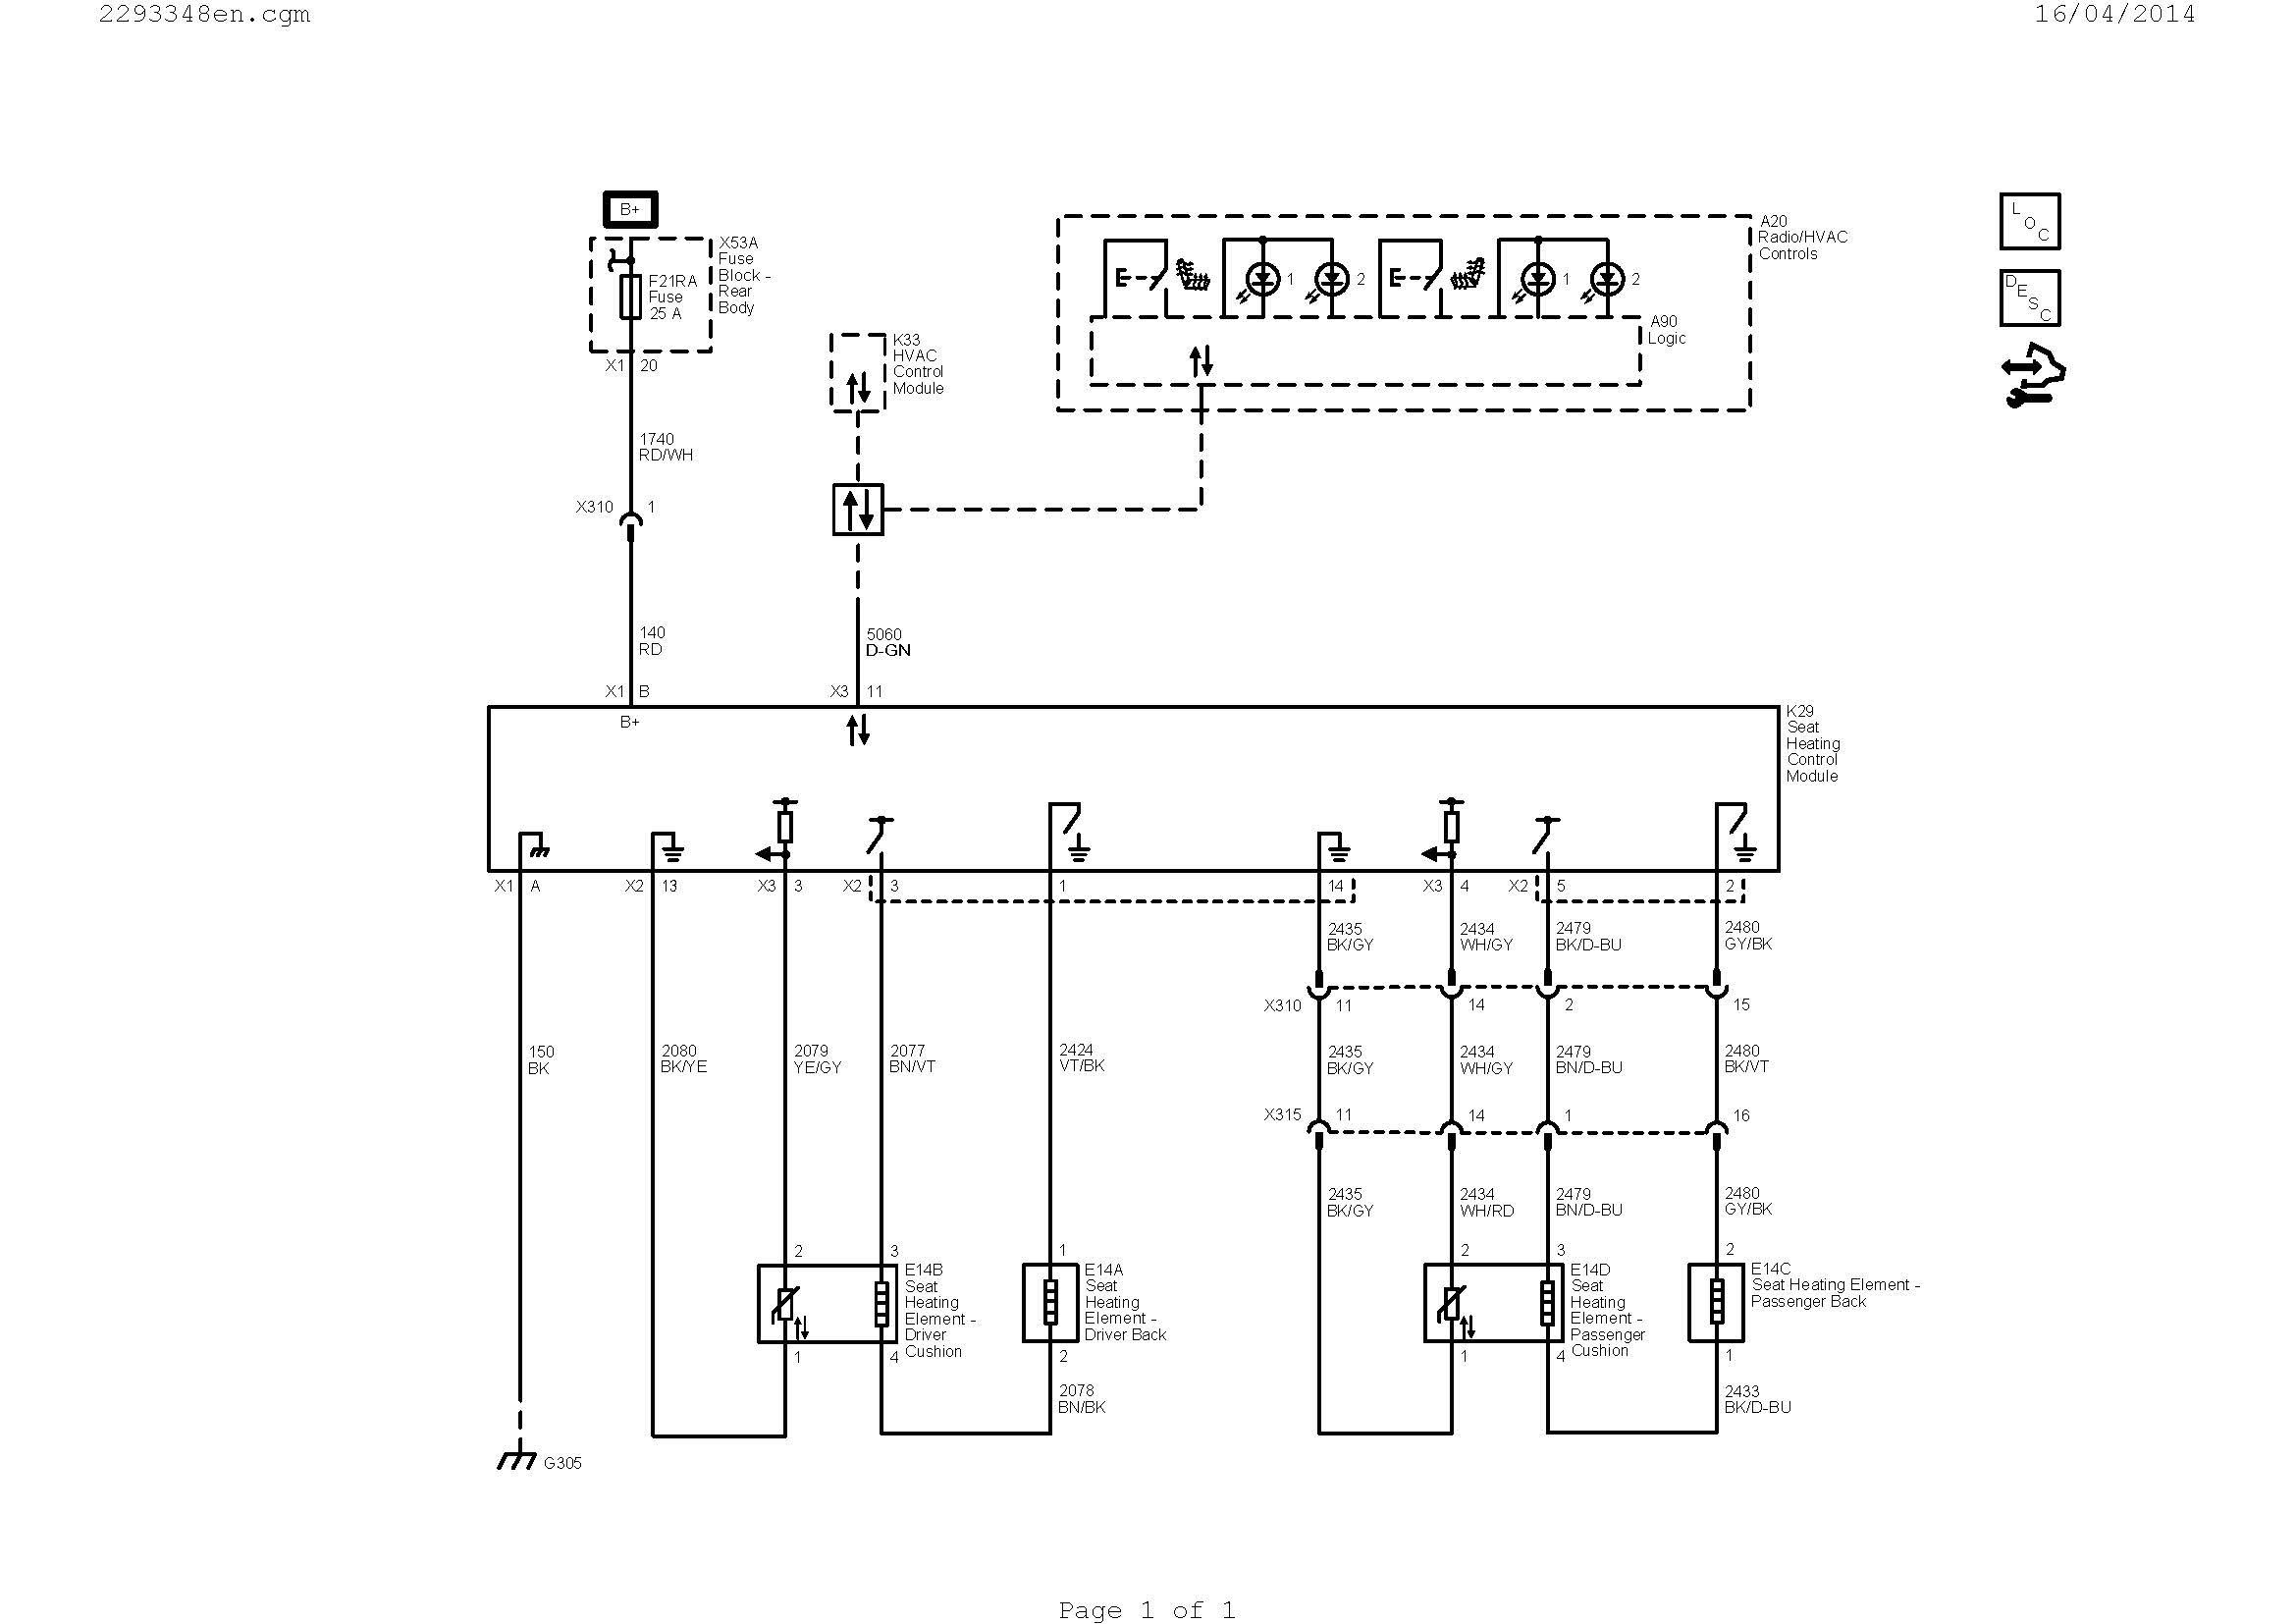 lennox wiring diagram download-wiring a ac thermostat diagram new wiring  diagram ac valid hvac  download  wiring diagram